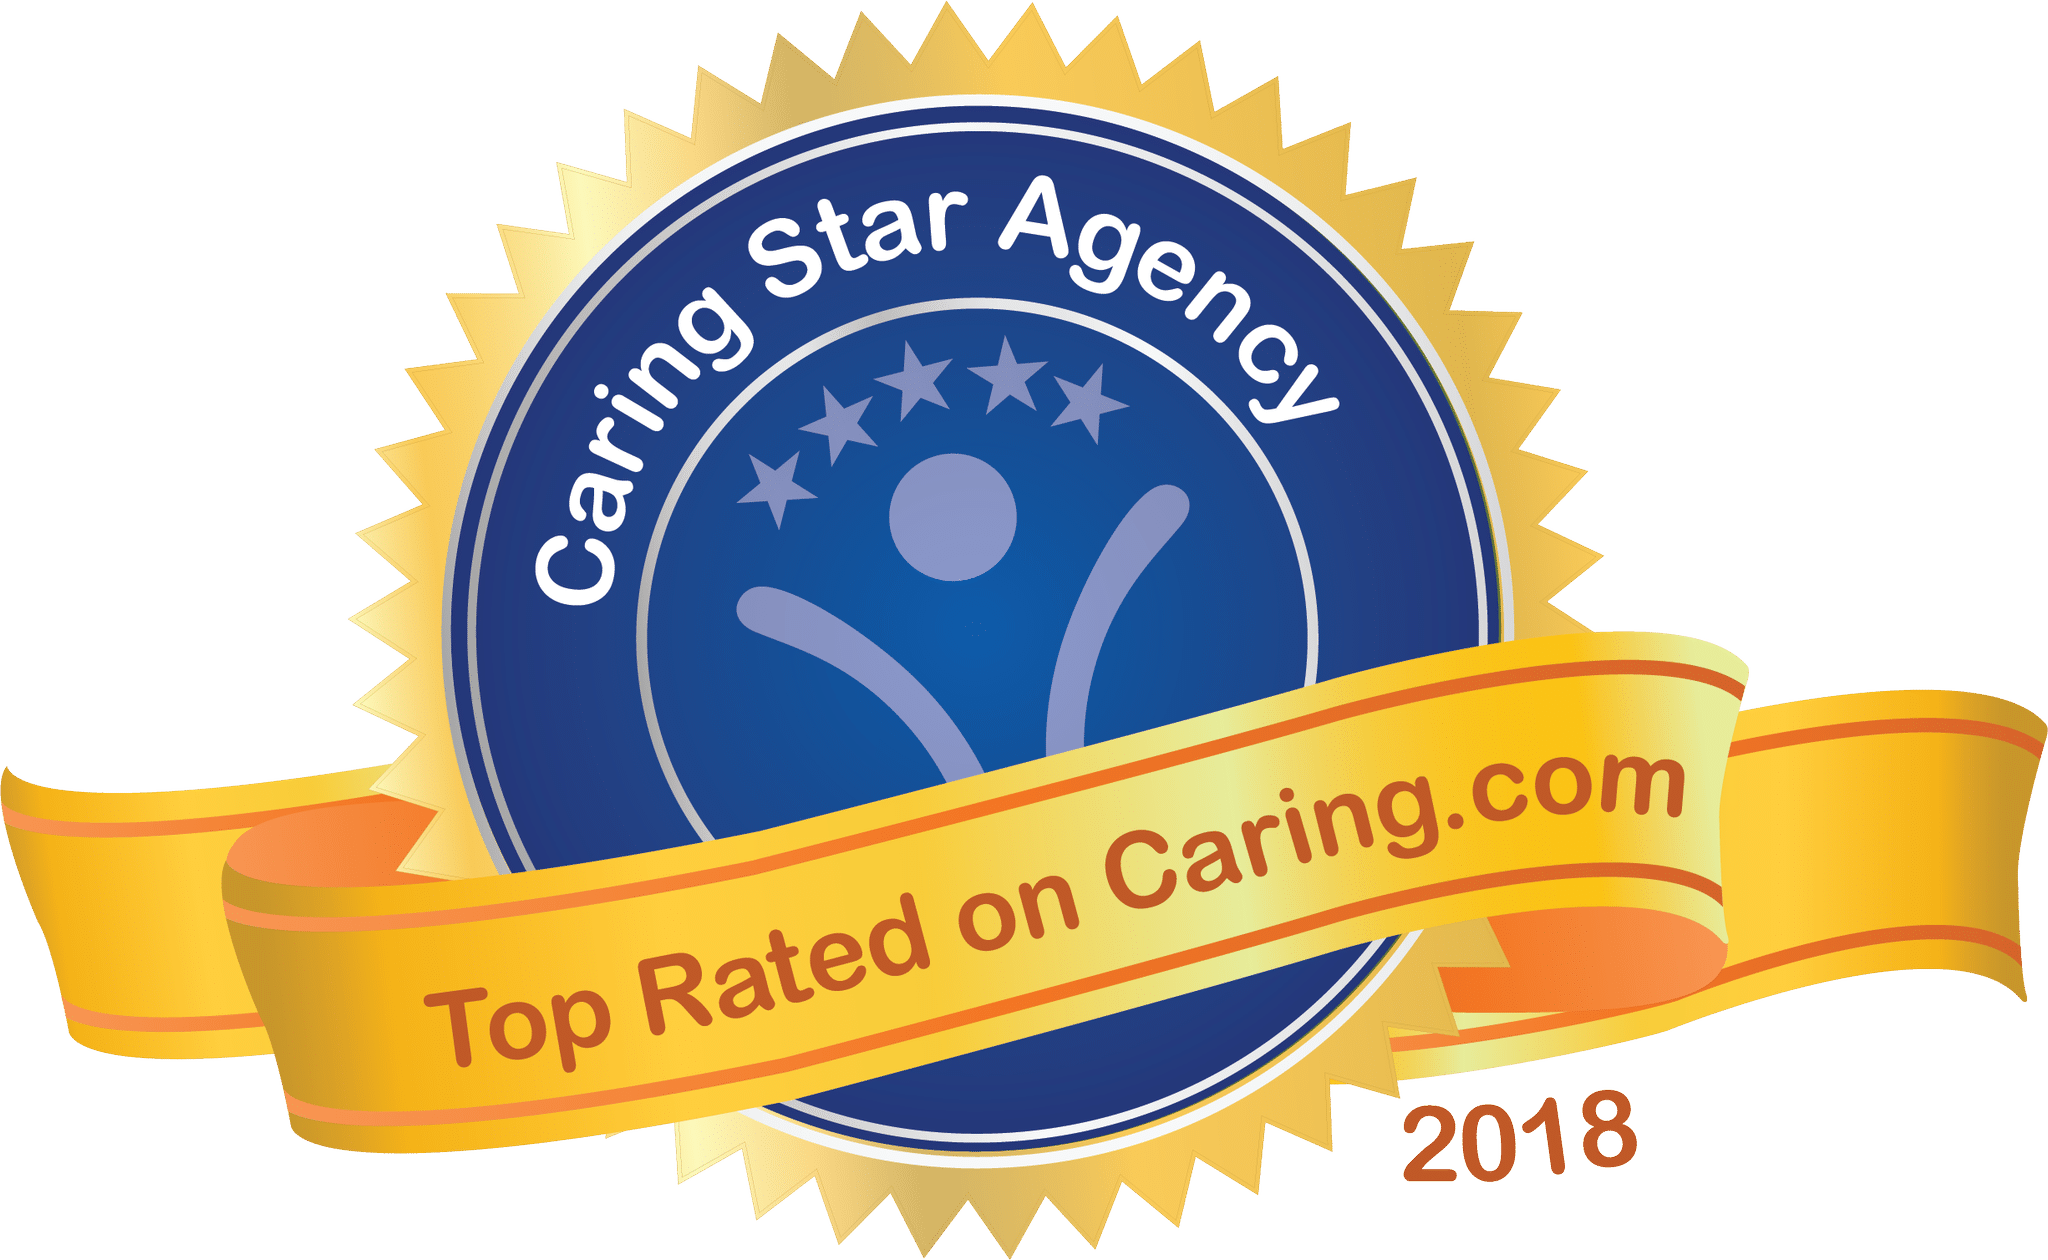 Caring Star Agency 2018. Top Rated on Caring.com